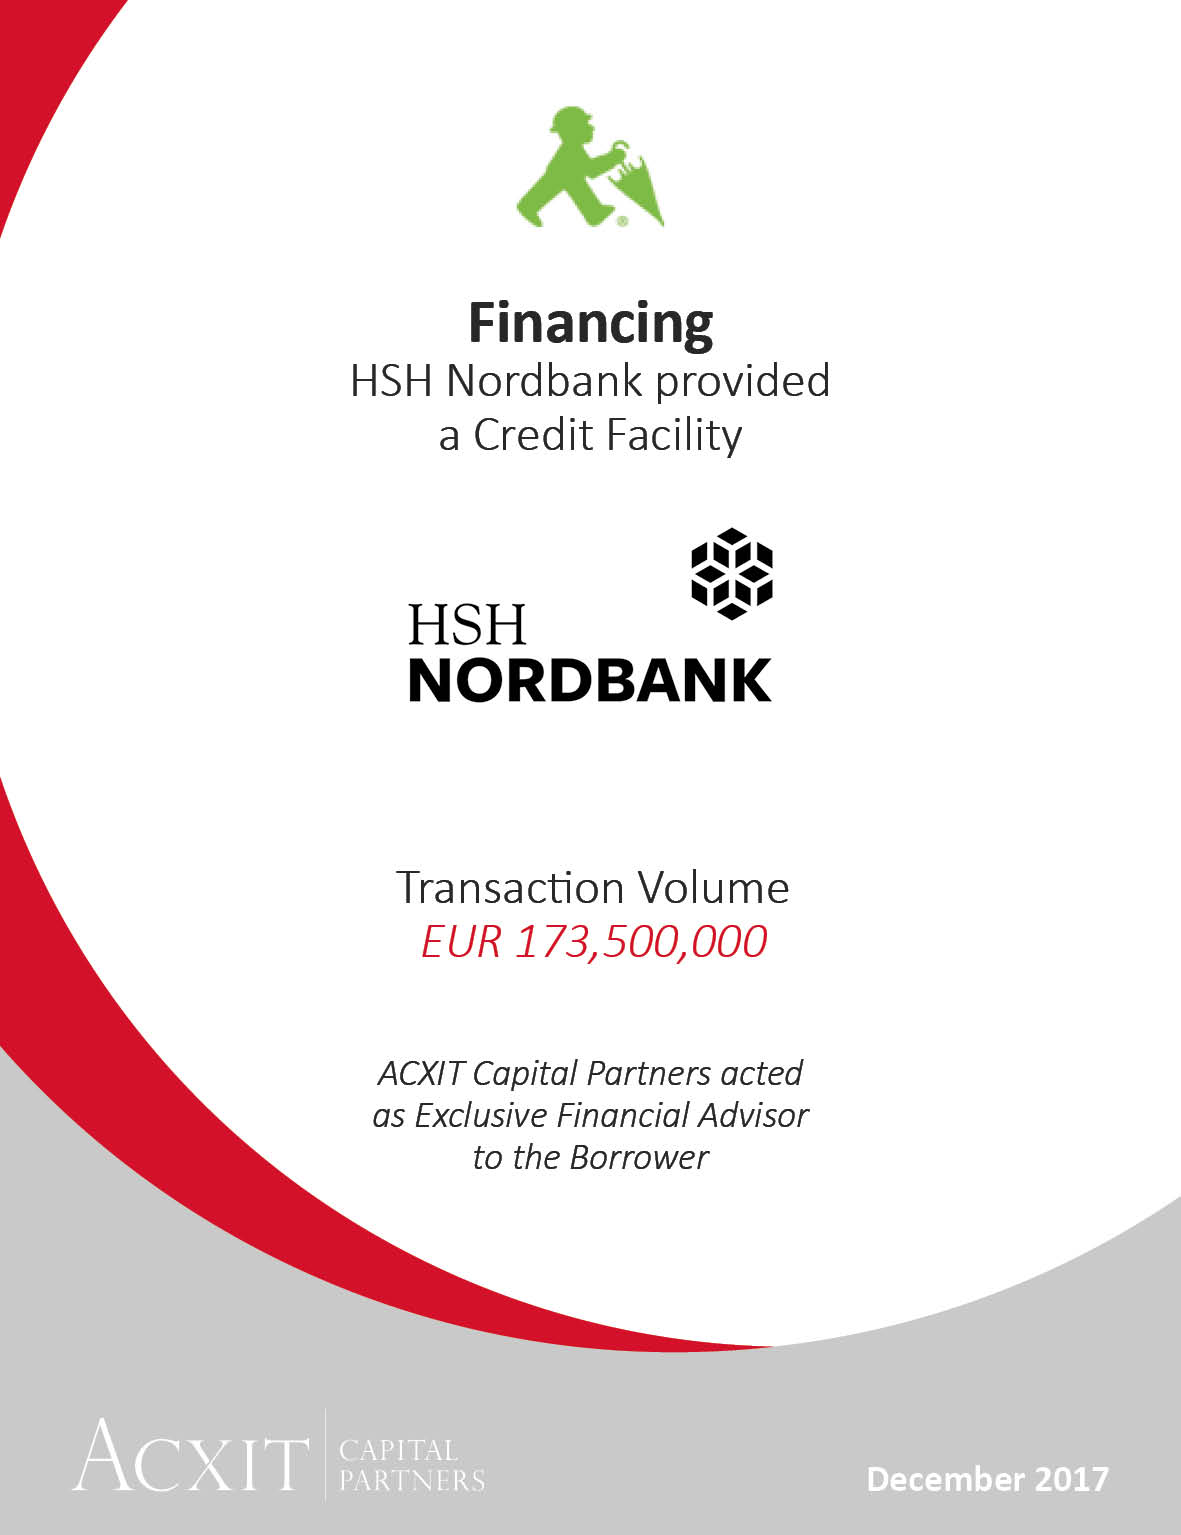 HSH Nordbank finances Greenman with EUR 173,500,000